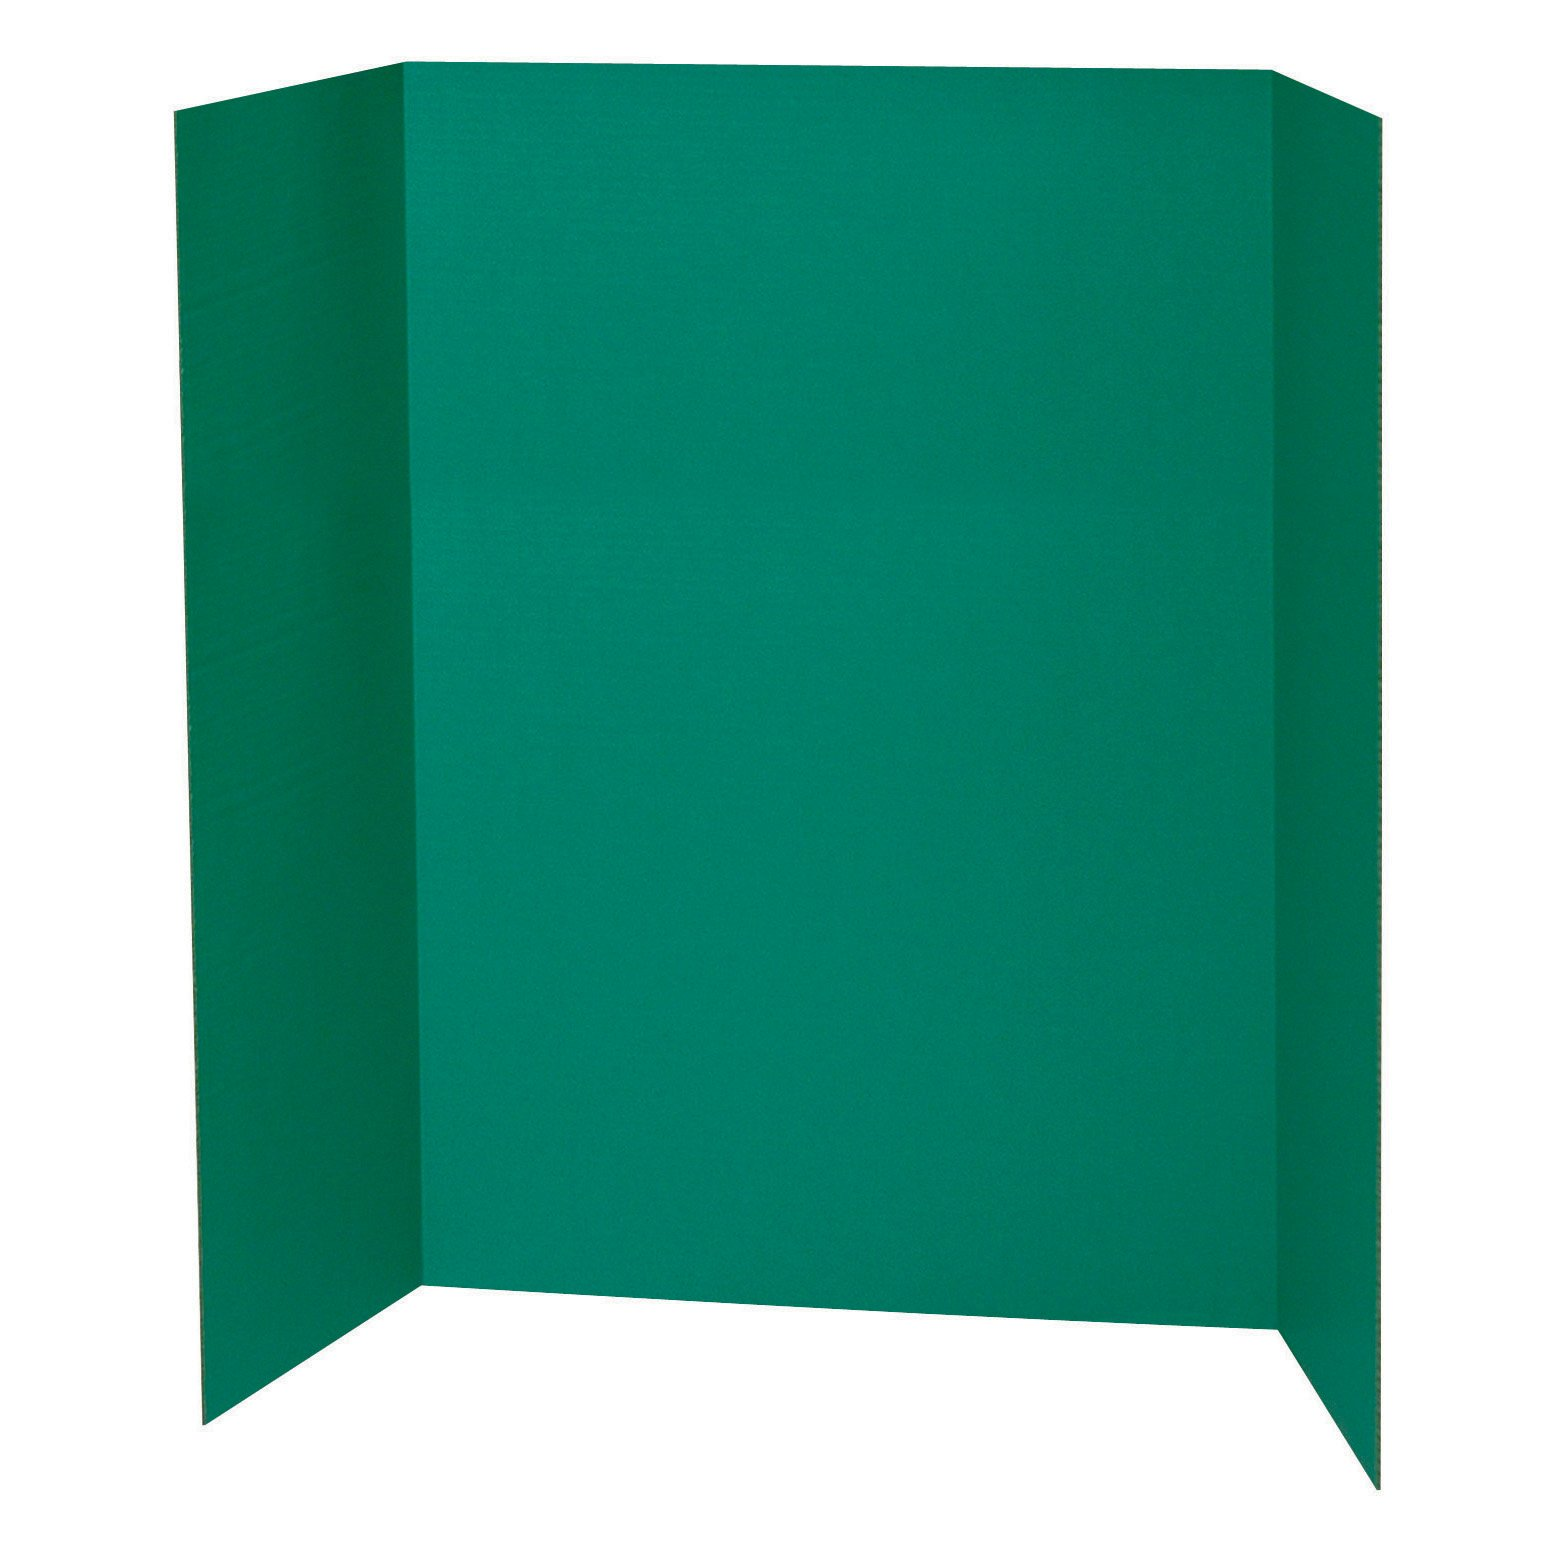 Spotlight 1 Ply Trifold Display Board, 48'' Width x 36'' Height, Green by Spotlight